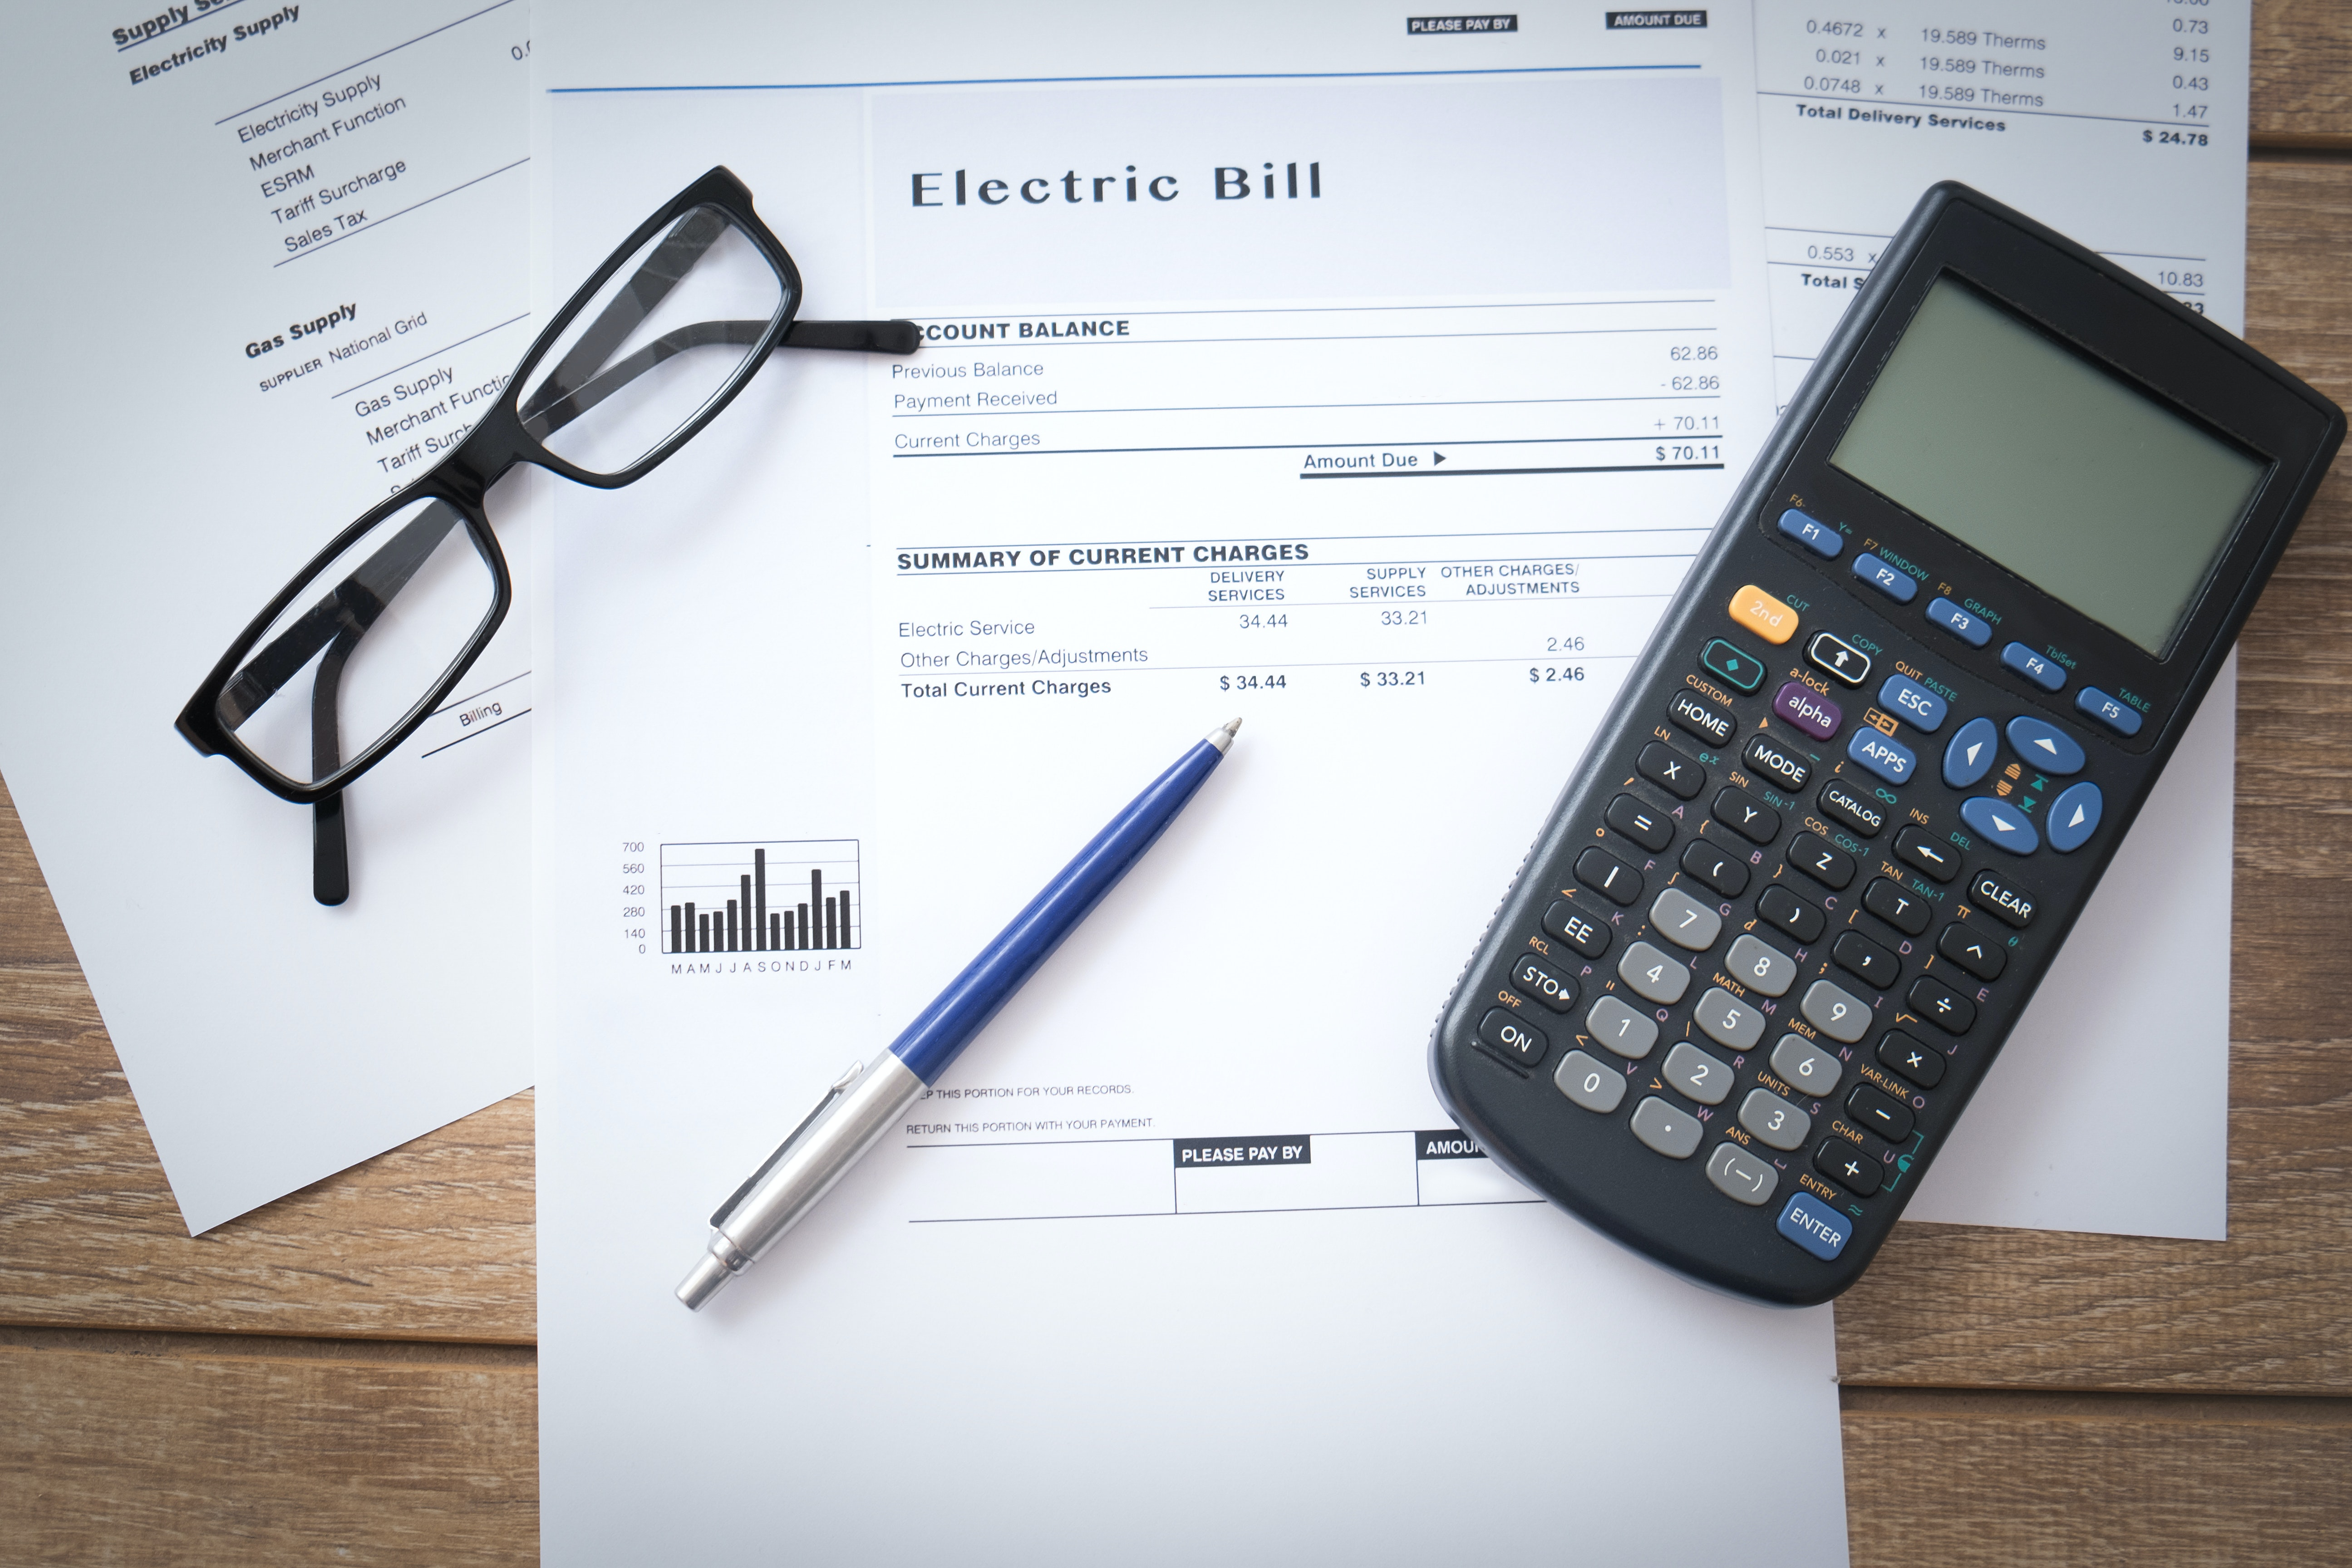 Energy bills on table